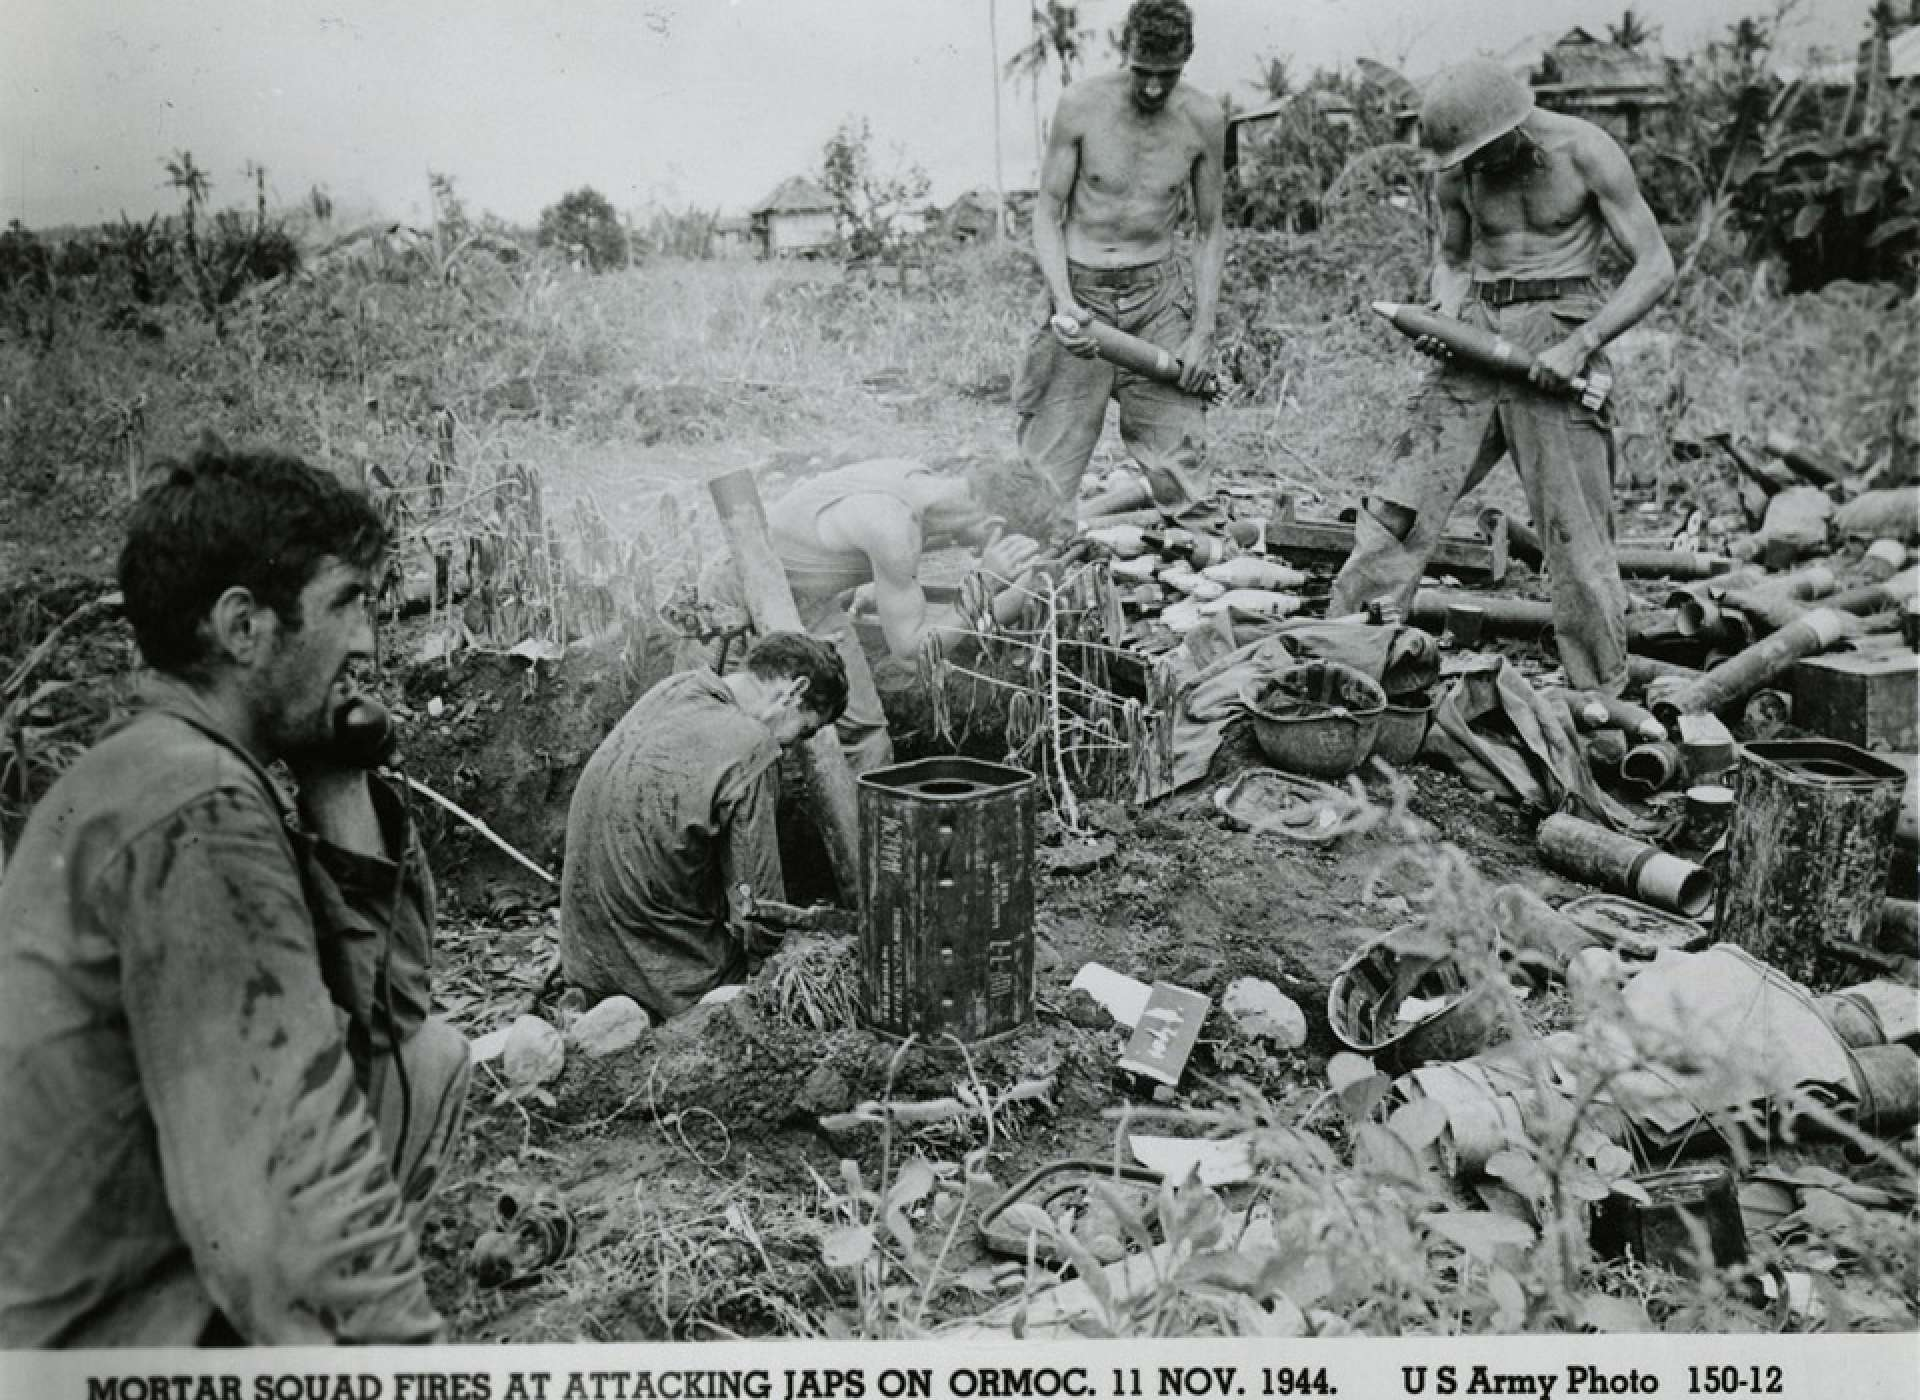 "Two United States Army soldiers holding mortar bombs next to two other soldiers who are firing the mortar; another soldier is talking into a field telephone. Official caption on front: ""Mortar squad fires at attacking Japs on Ormoc, 11 Nov. 1944. US Army Photo 150-12."" Ormoc, Leyte, Philippines. 11 November 1944. Gift in memory of Sgt. Lyle E. Eberspecher, 2013.495.930"